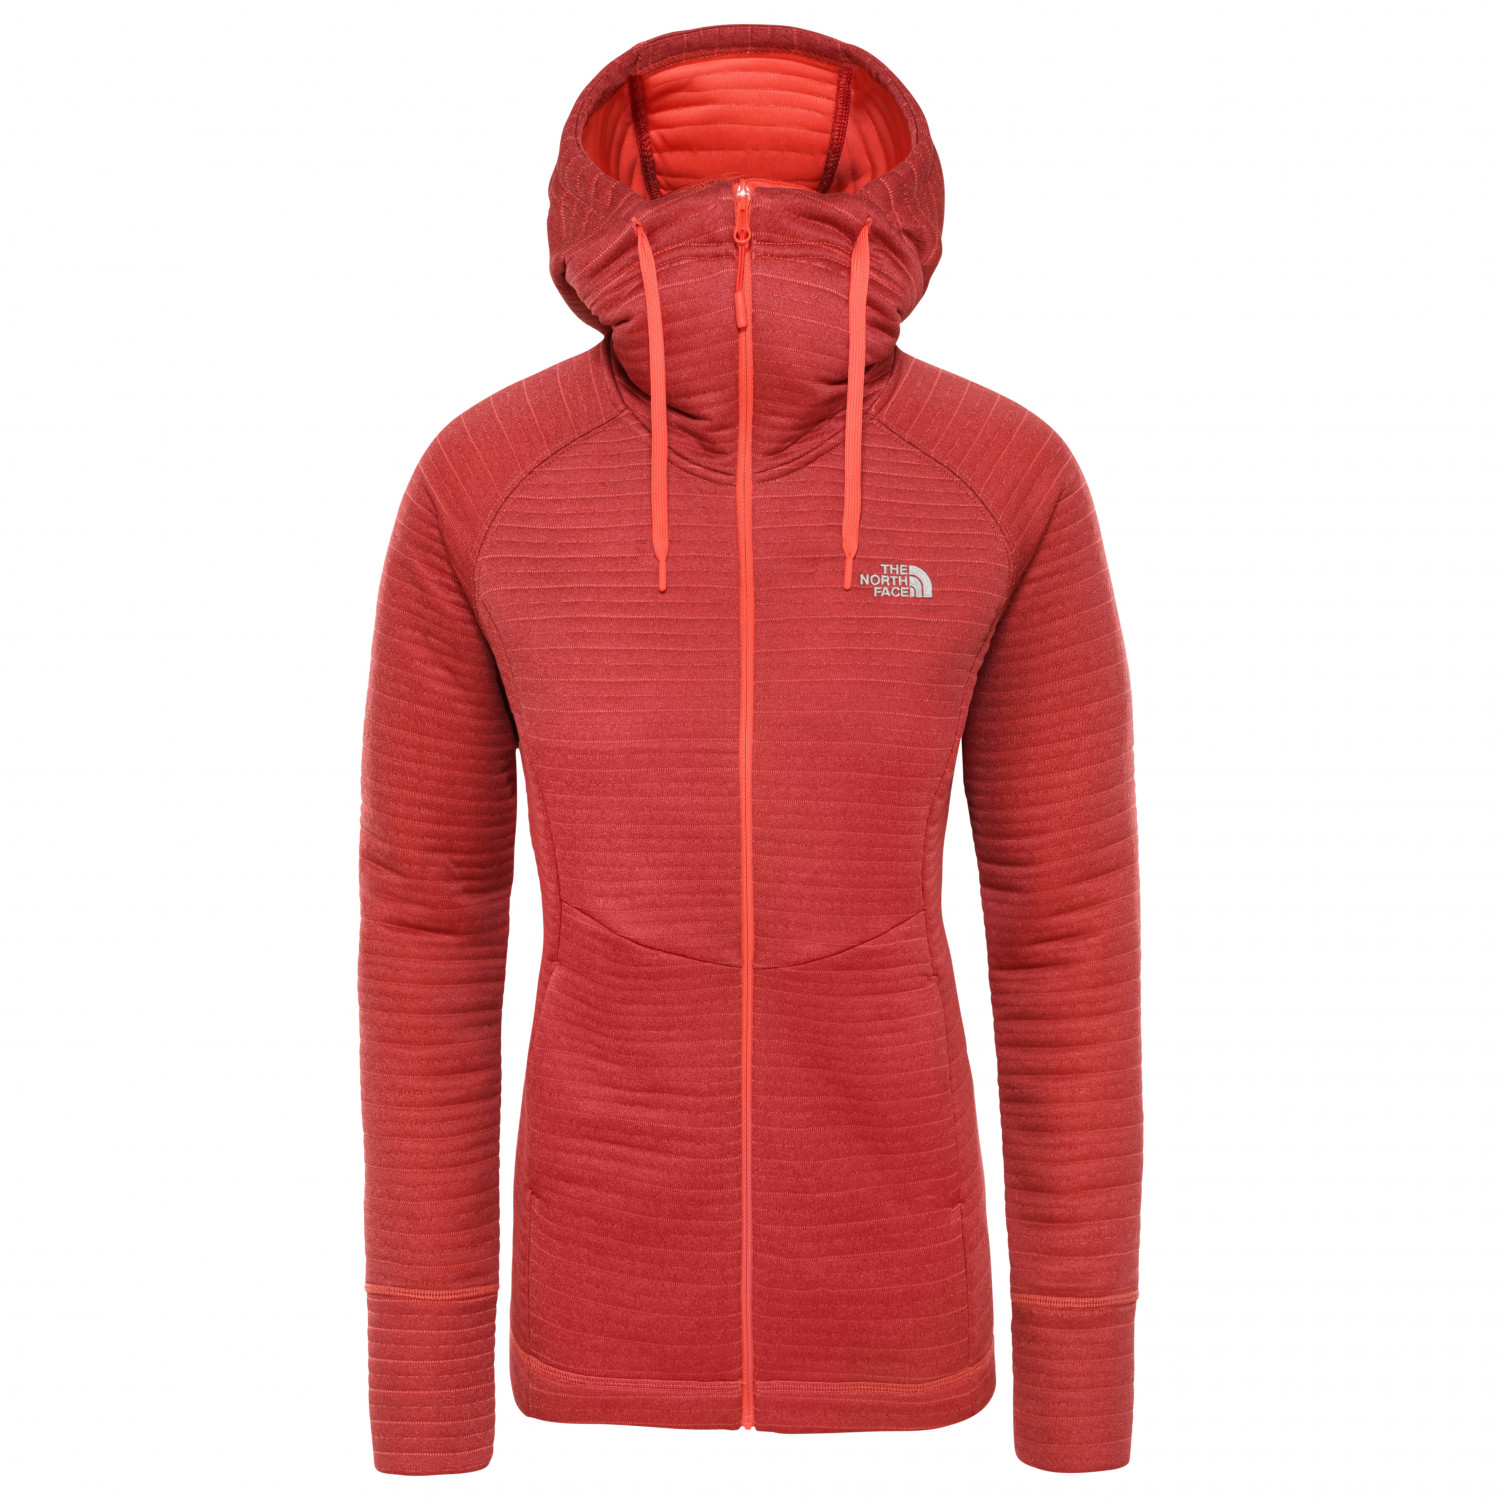 separation shoes a2efe 26784 The North Face Hikesteller Midlayer Jacket - Giacca in pile ...